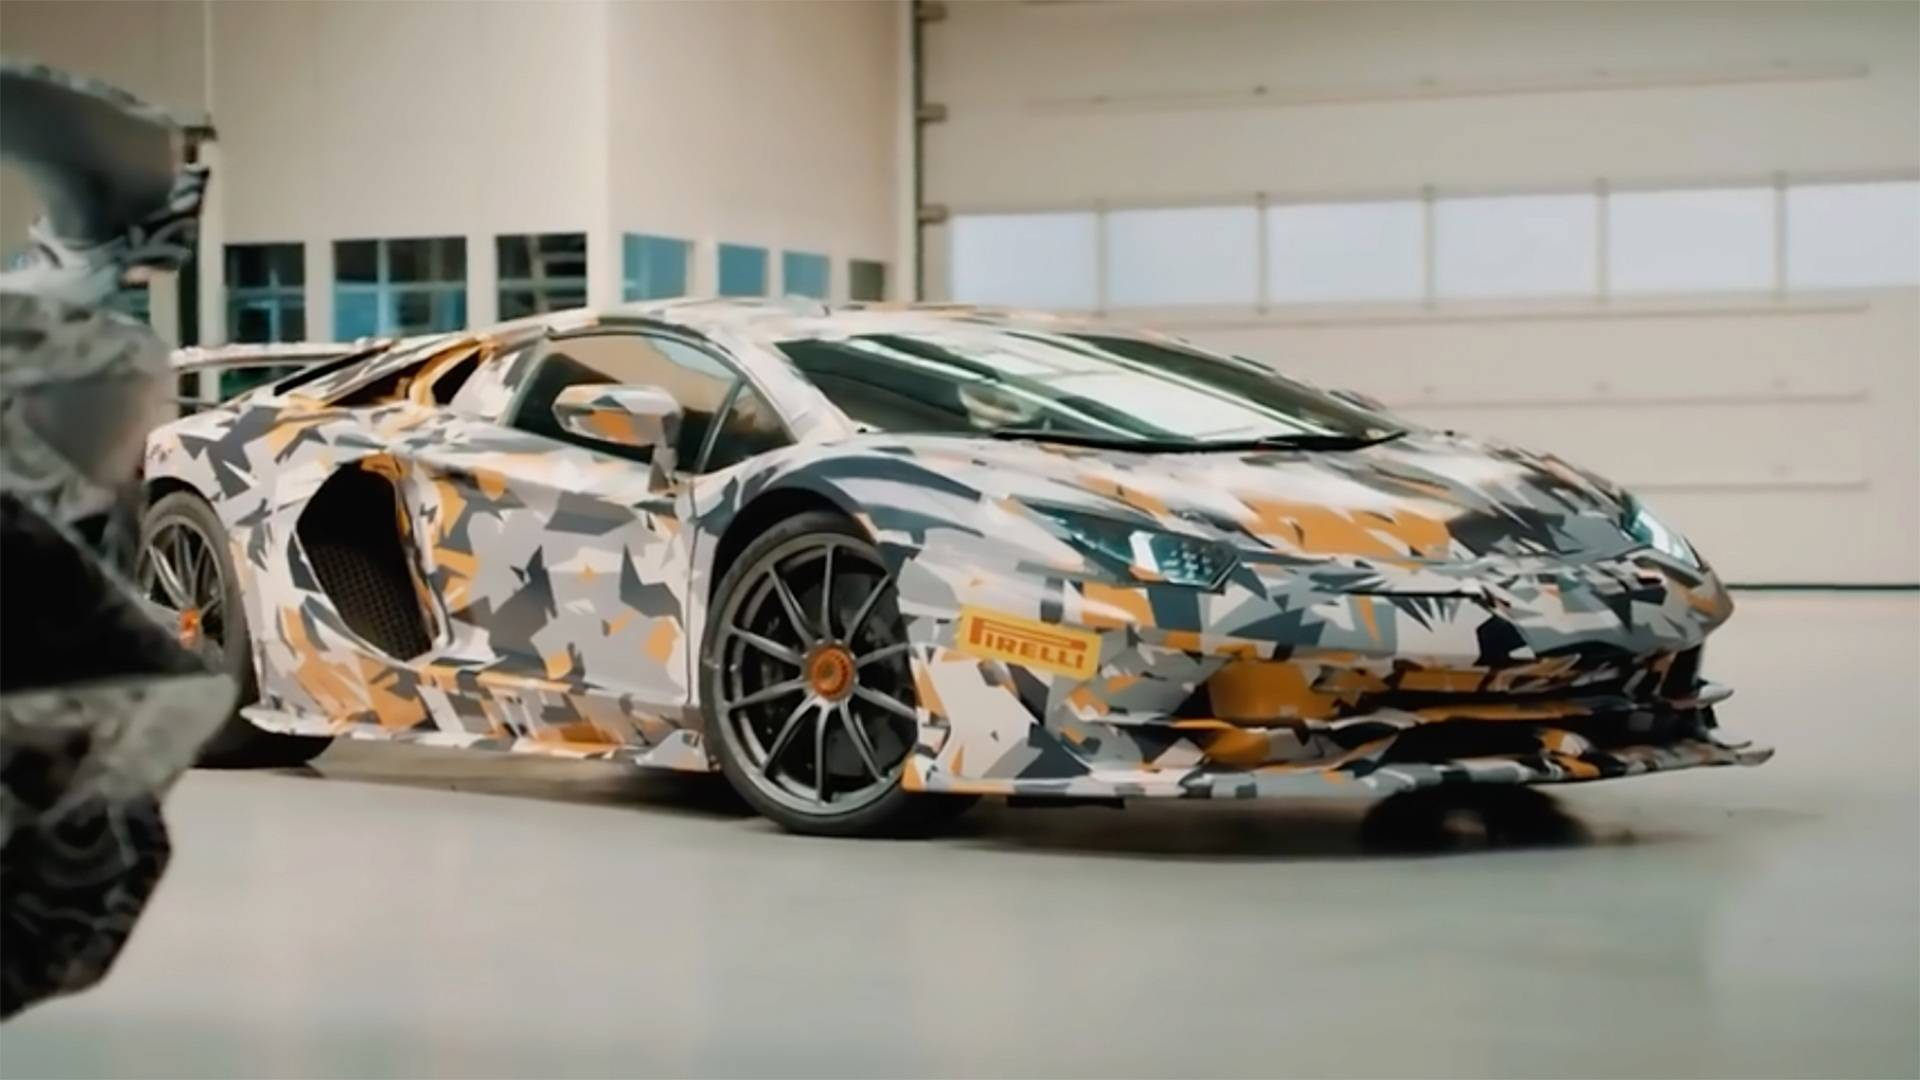 Lamborghini Aventador Svj Meets The Nurburgring In Latest Teaser